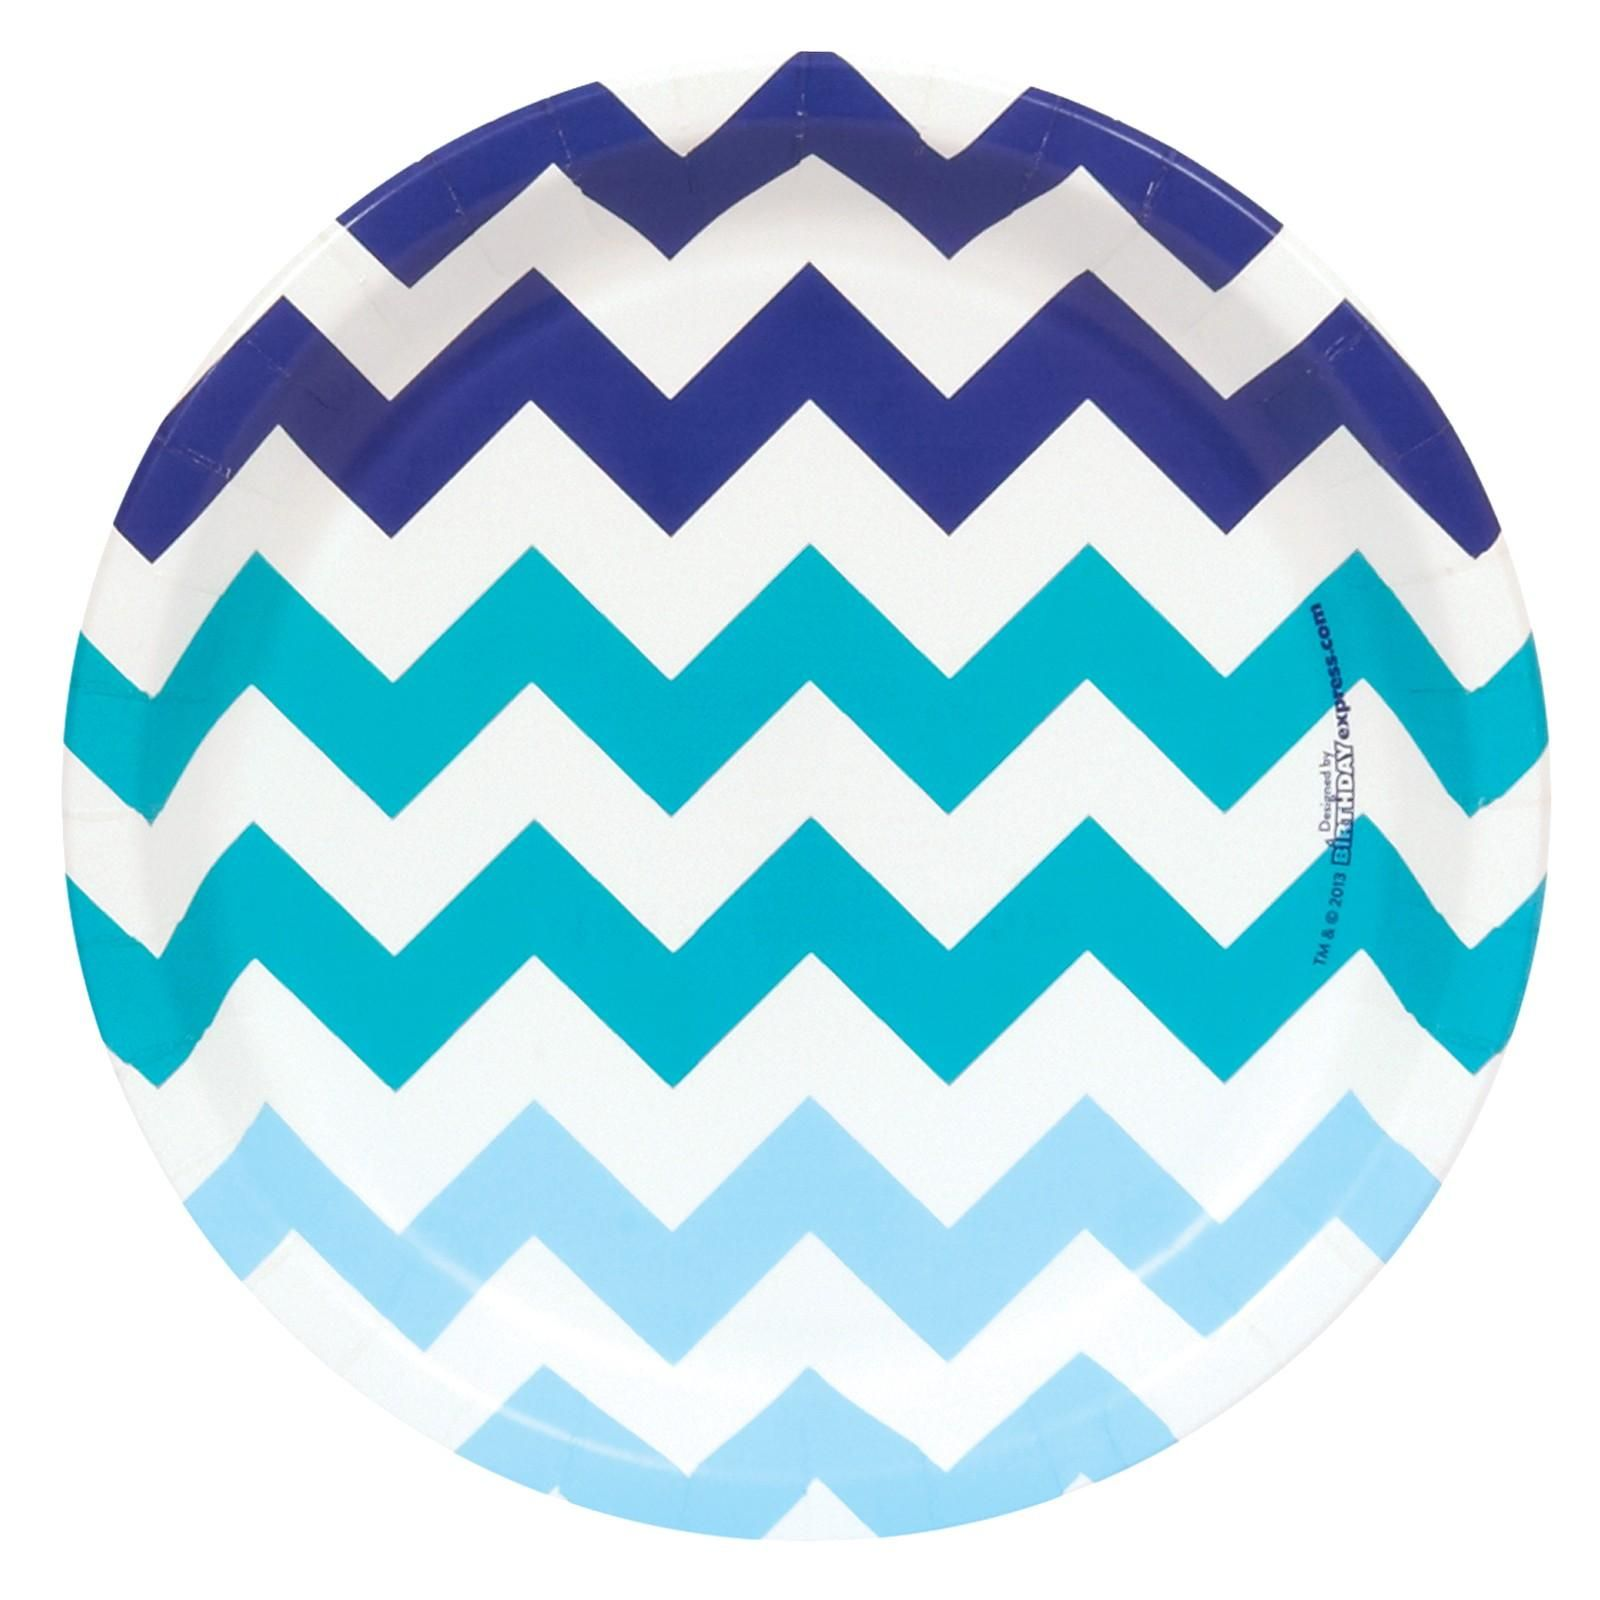 Shades of Blue Chevron Dessert Plates 8pk Party Supplies Canada $3.99 x8  sc 1 st  Pinterest & Shades of Blue Chevron Dessert Plates 8pk Party Supplies Canada ...